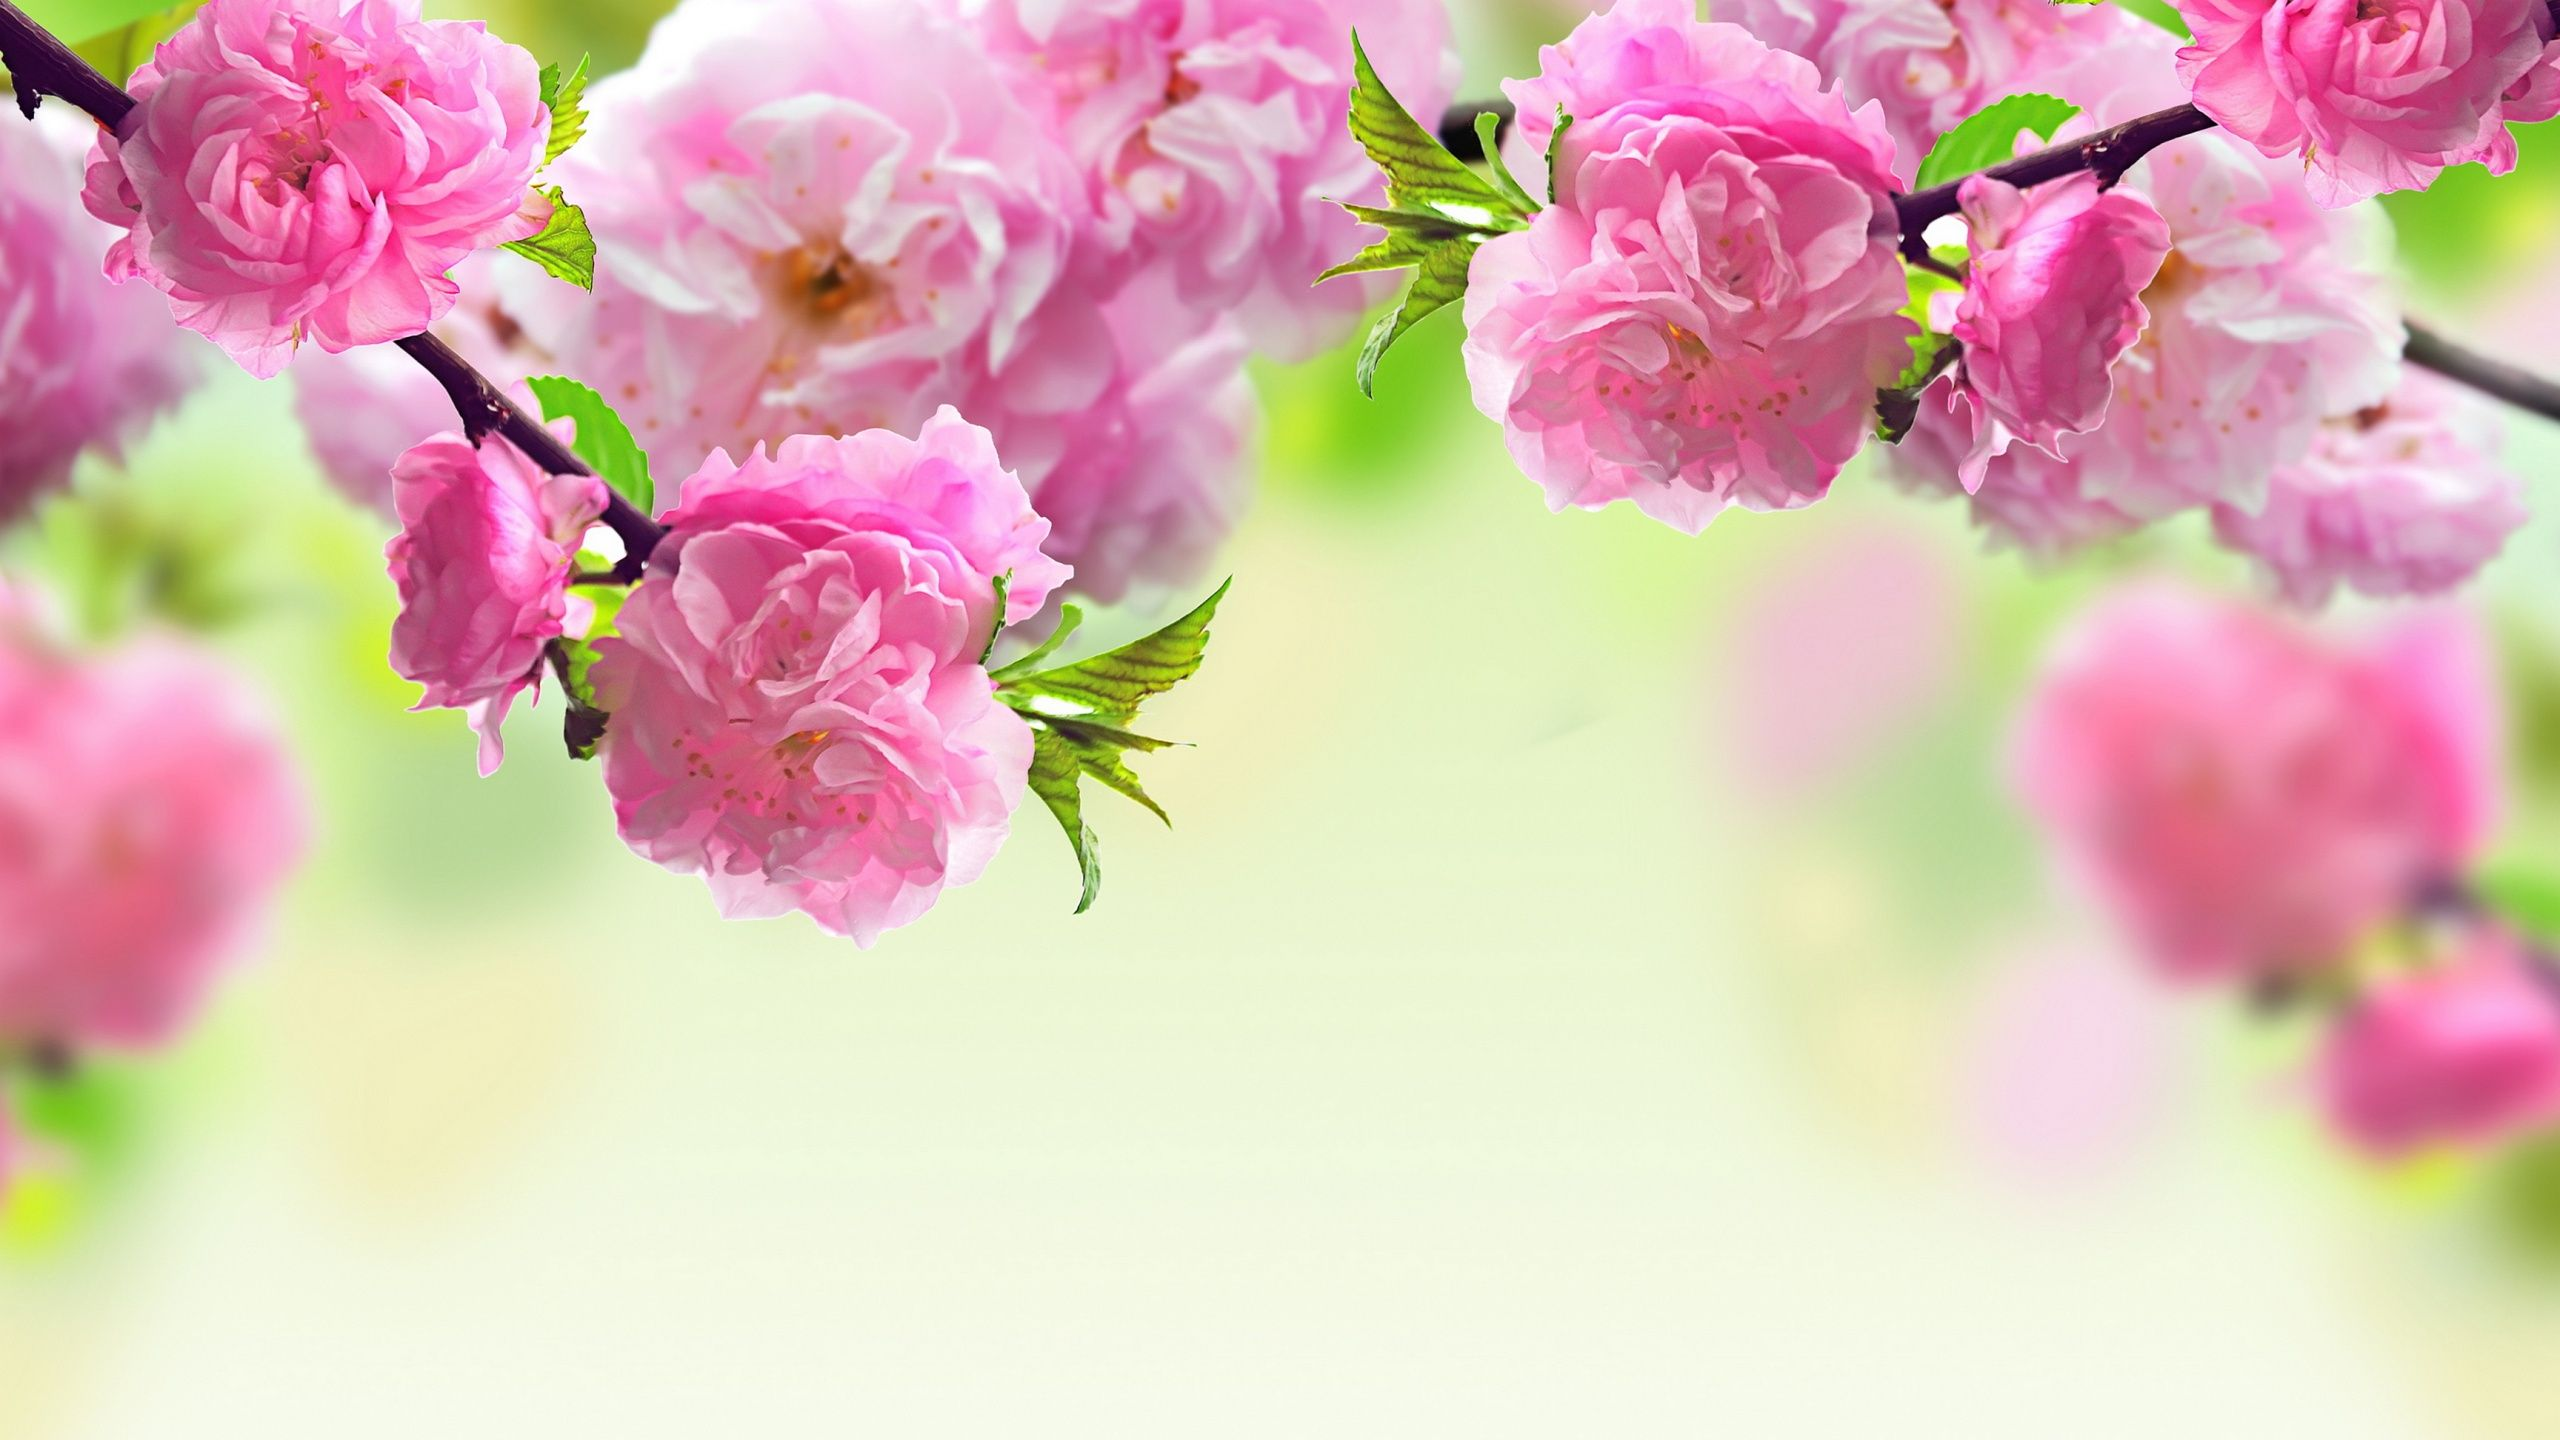 Spring Flowers Live Wallpaper Android Apps On Google Play Best